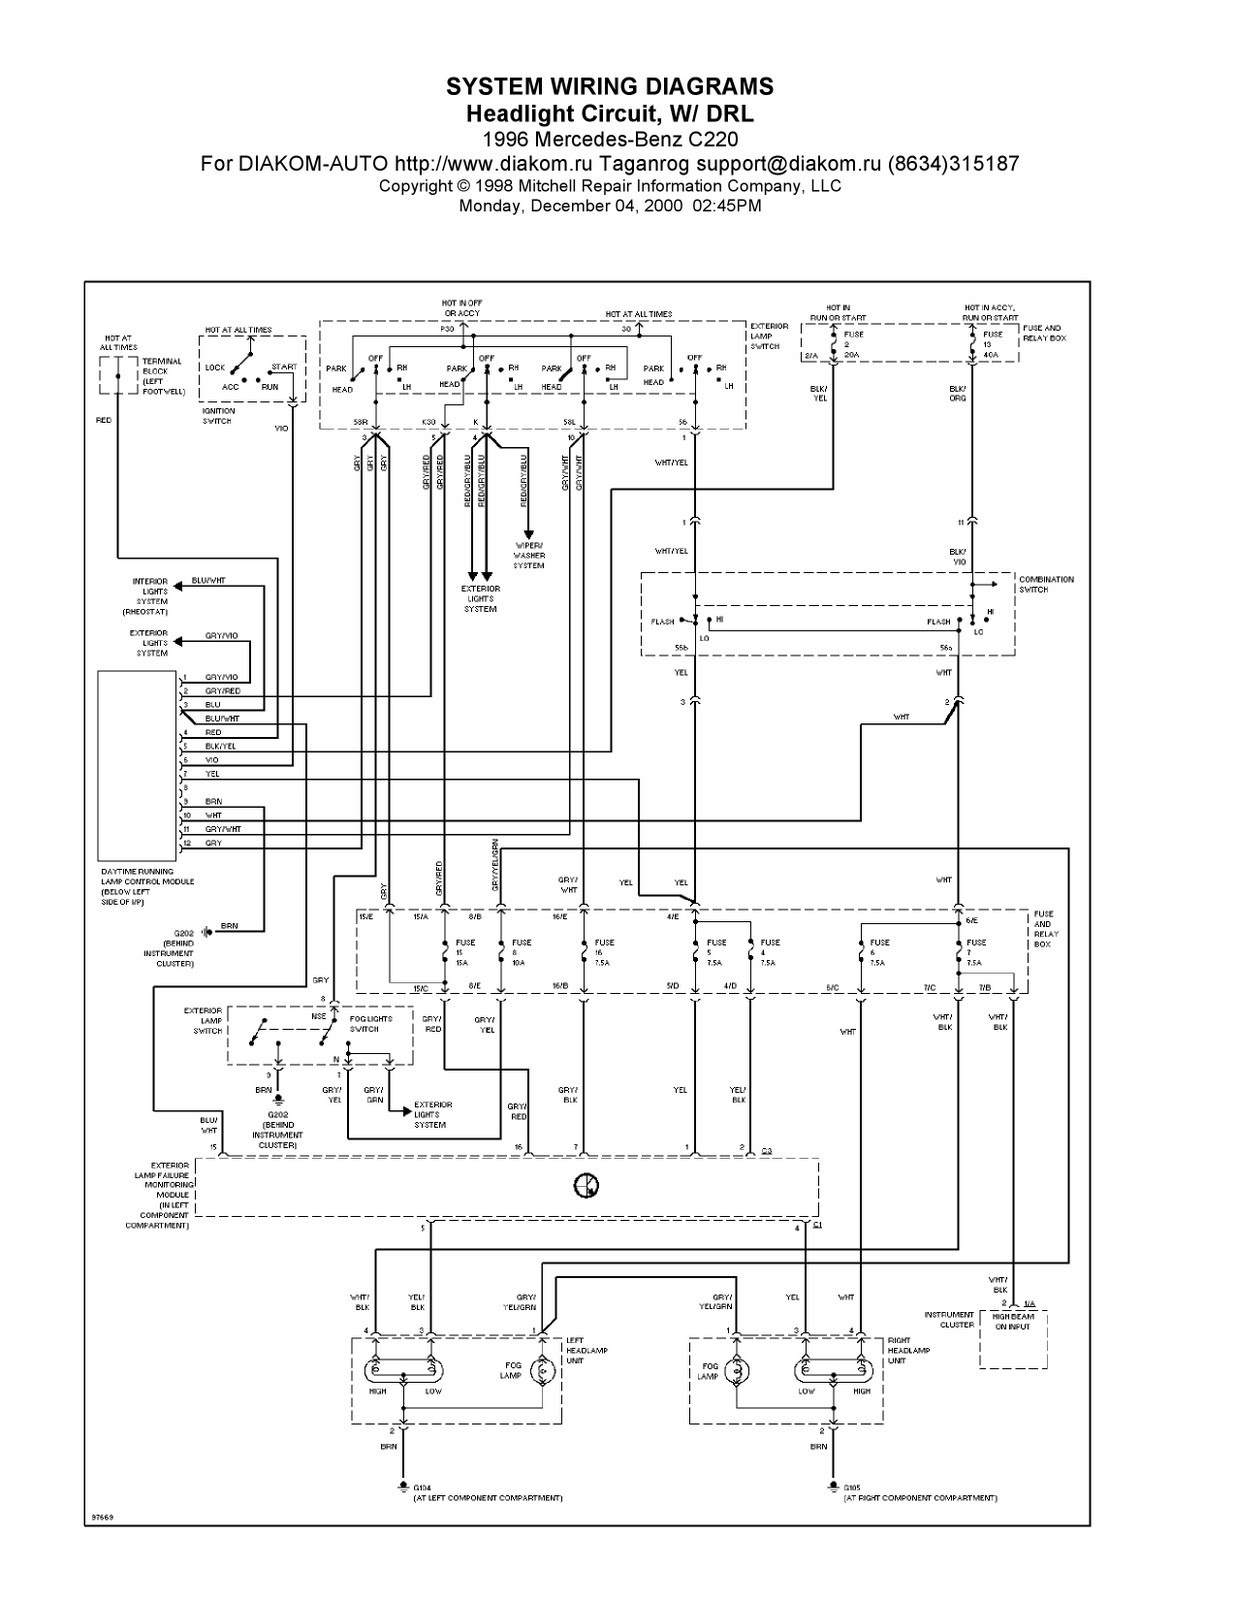 hight resolution of mercedes benz electrical wiring diagrams wiring database librarymercedes electrical diagrams wiring diagrams schema mercedes benz 1990